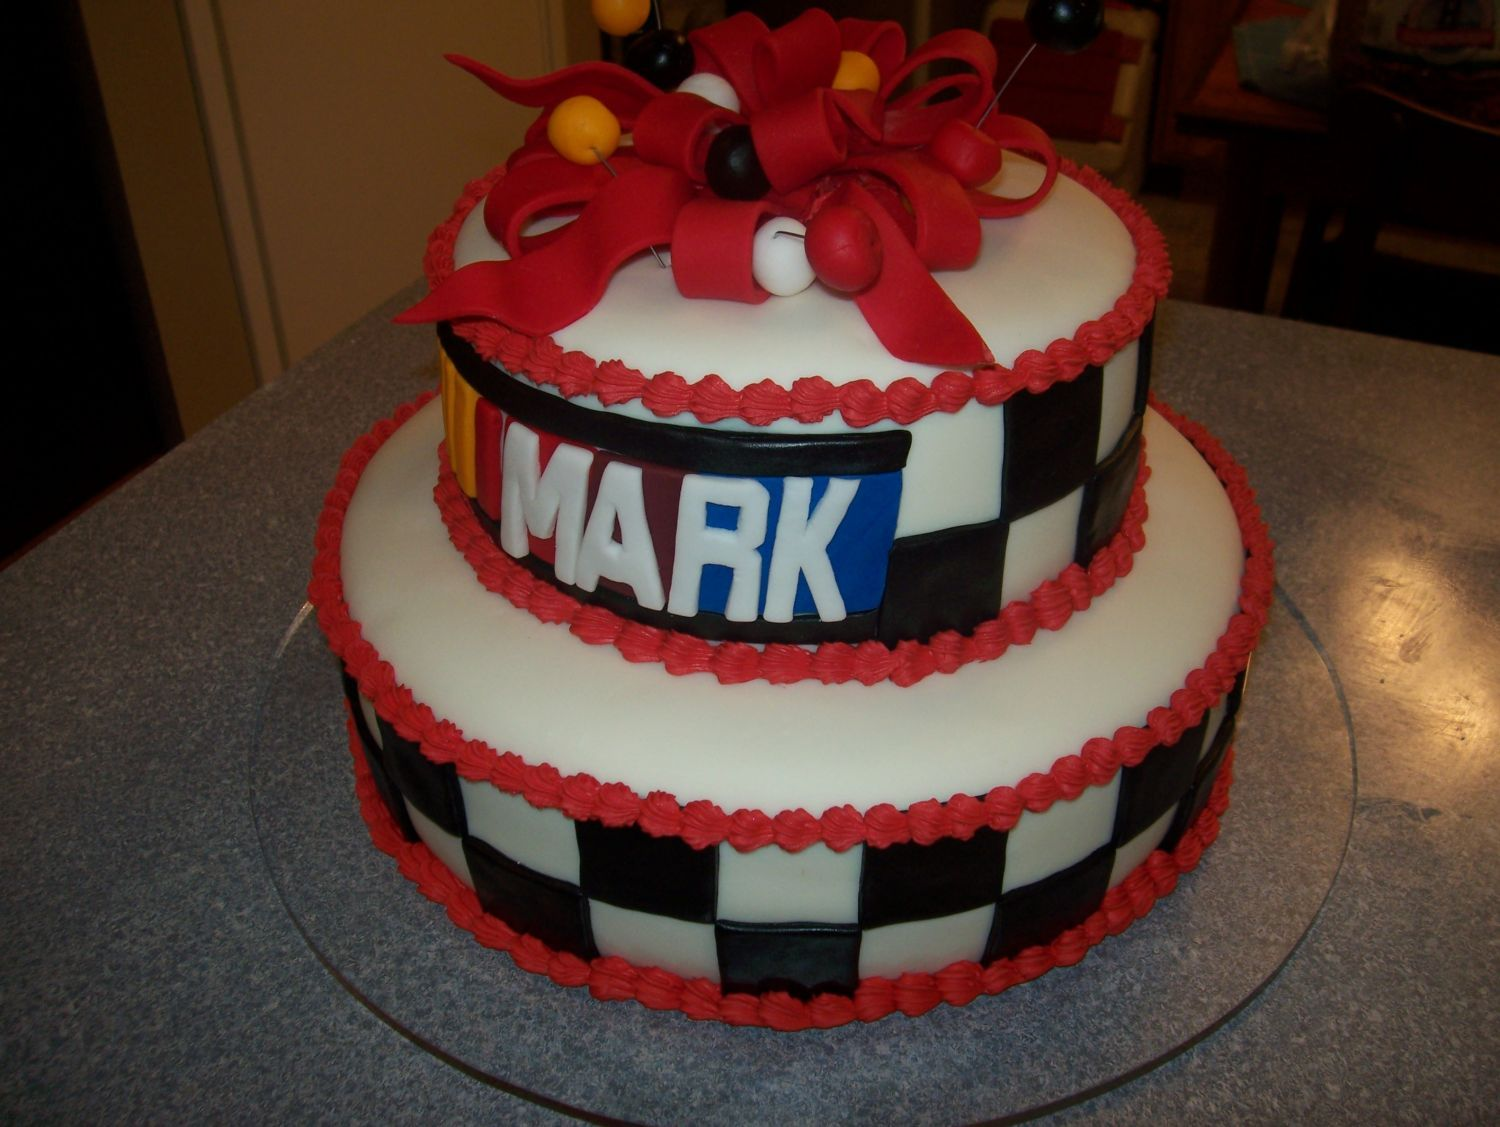 Stacked nascar birthday cake this cake was for a 30th birthday stacked nascar birthday cake this cake was for a 30th birthday party they didn sciox Choice Image